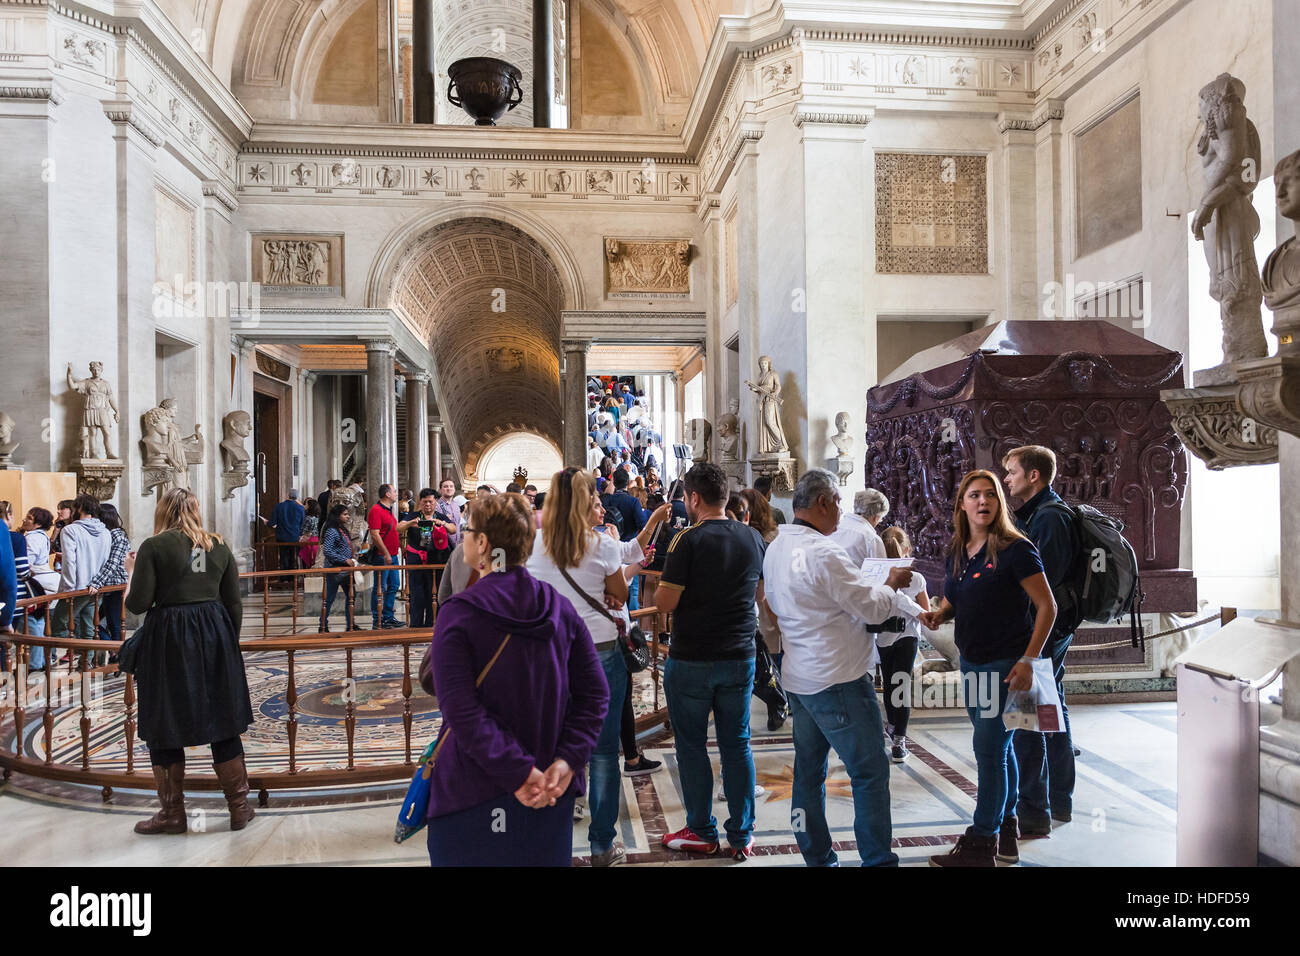 Mosaic in vatican stockfotos mosaic in vatican bilder alamy - Korbmacher fliesen ...